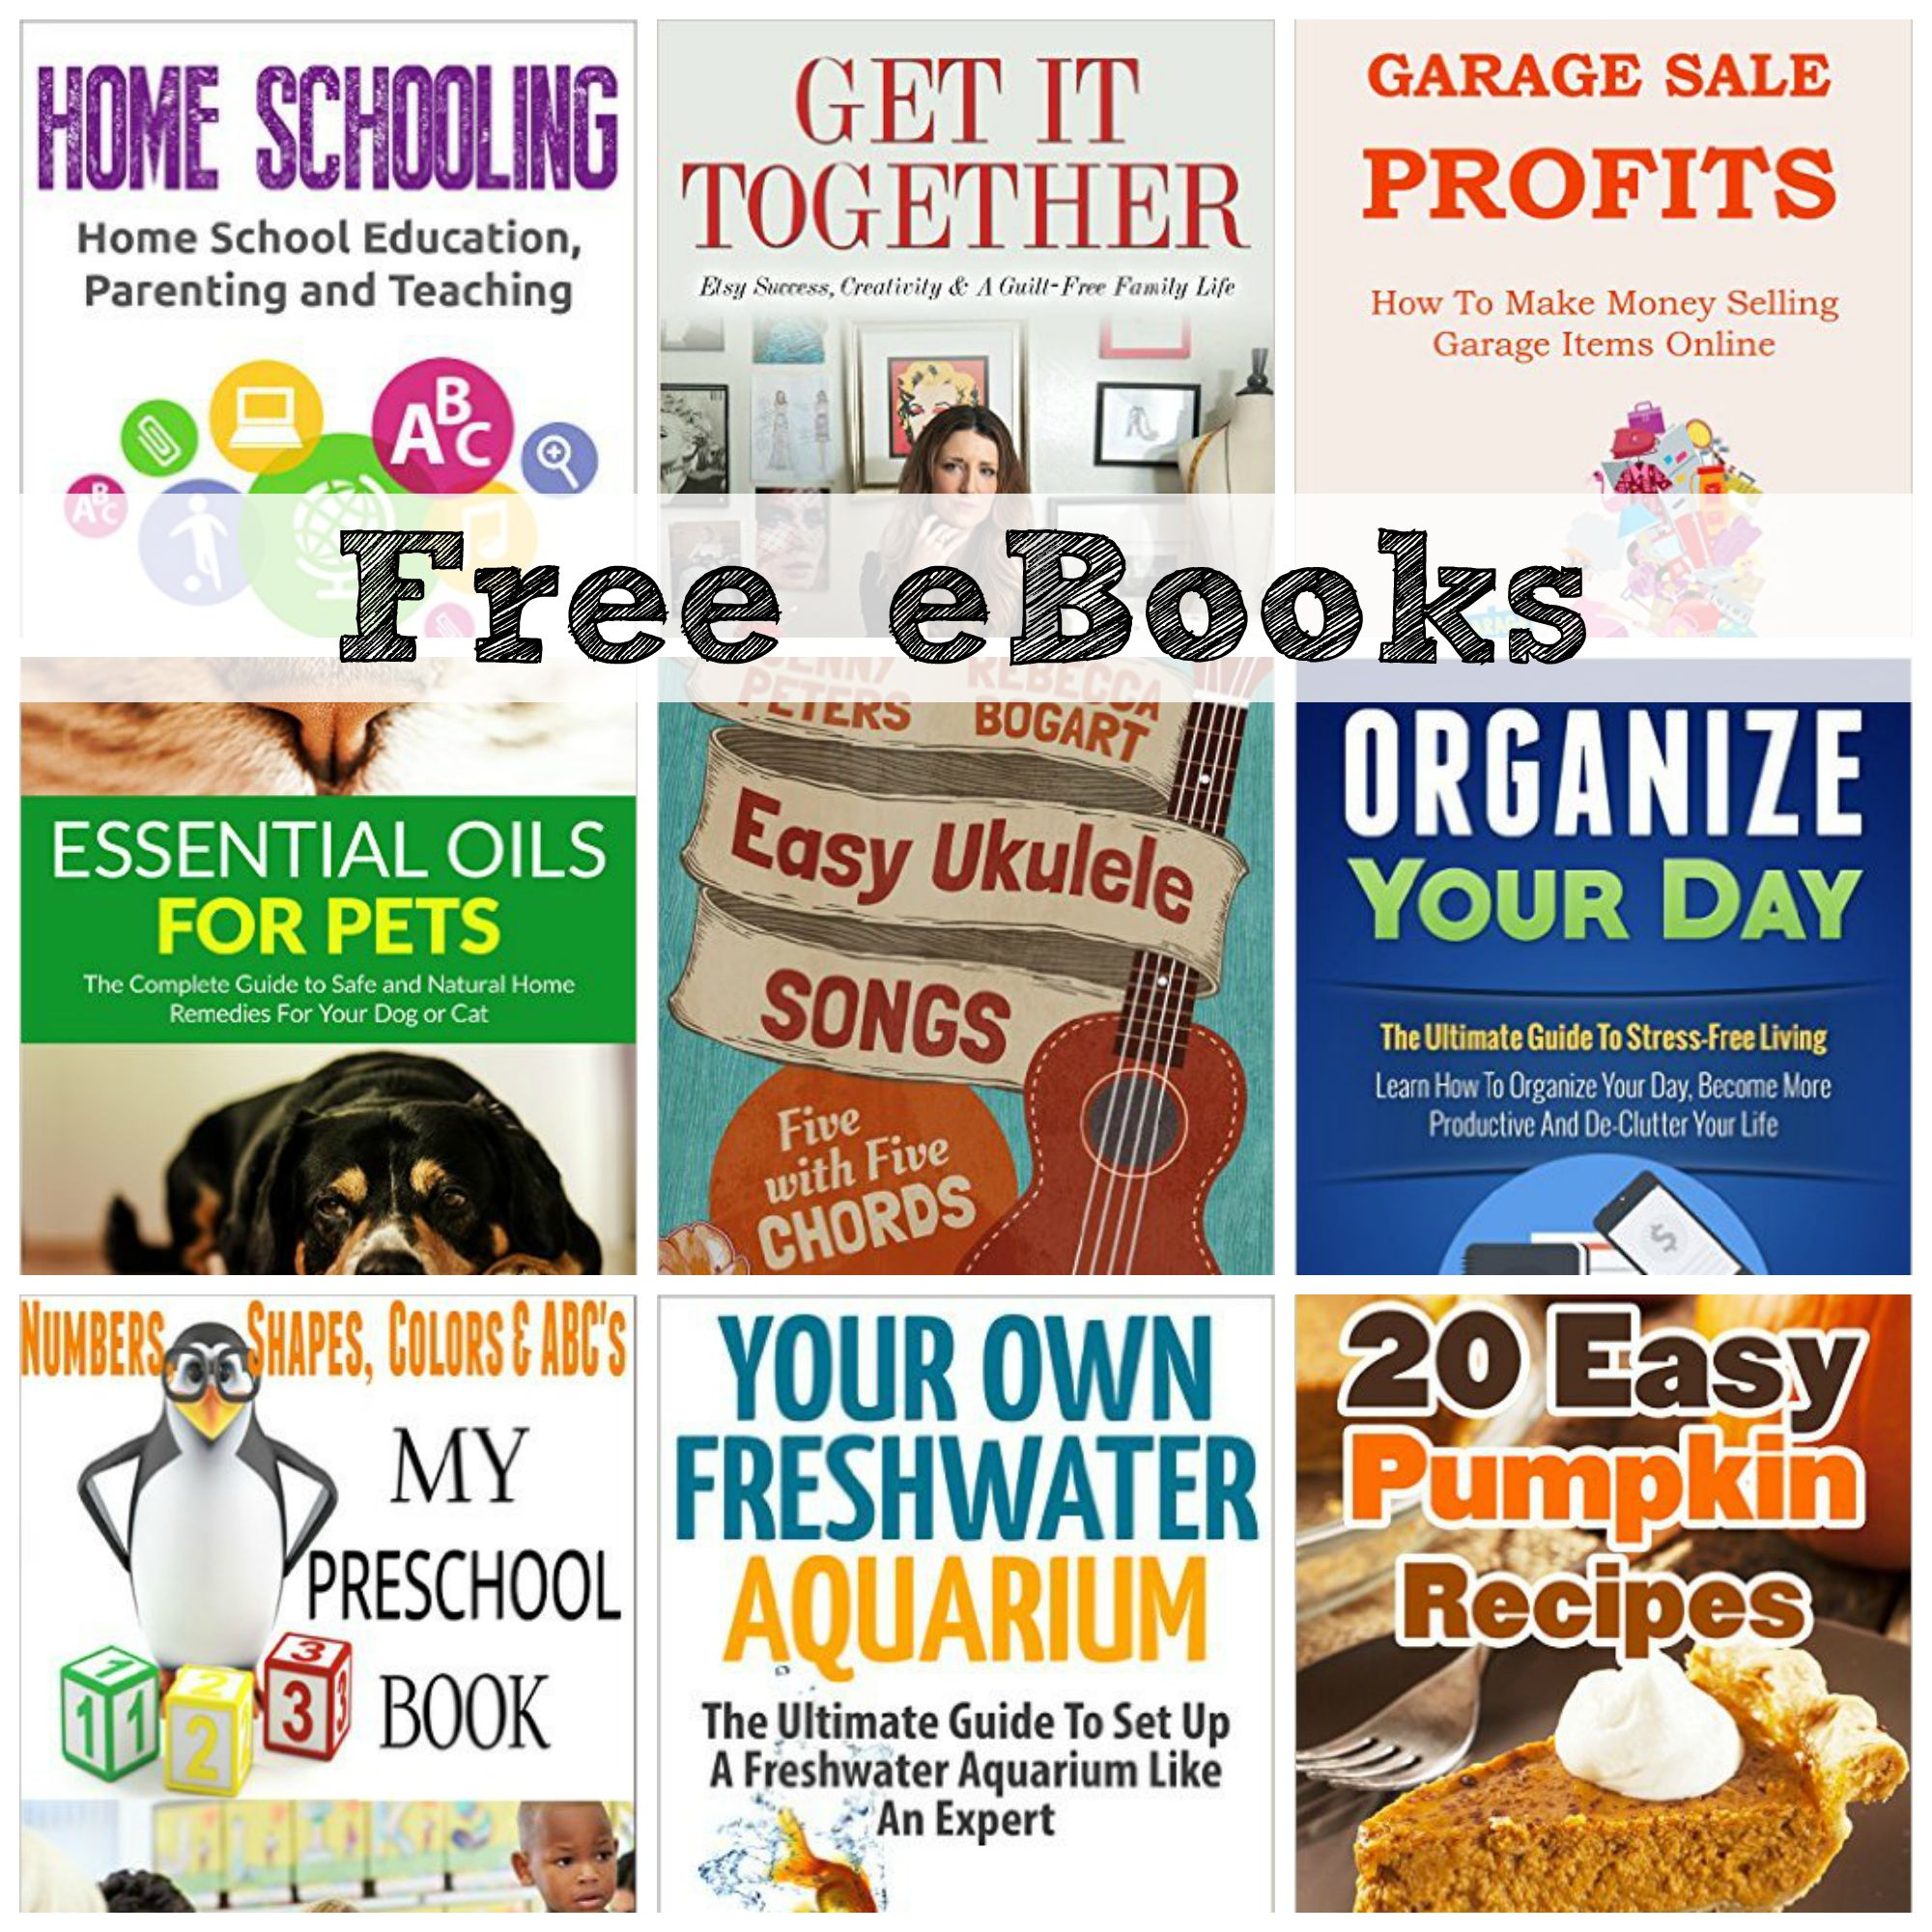 Free Ebooks Easy Ukulele Songs 20 Easy Pumpkin Recipes